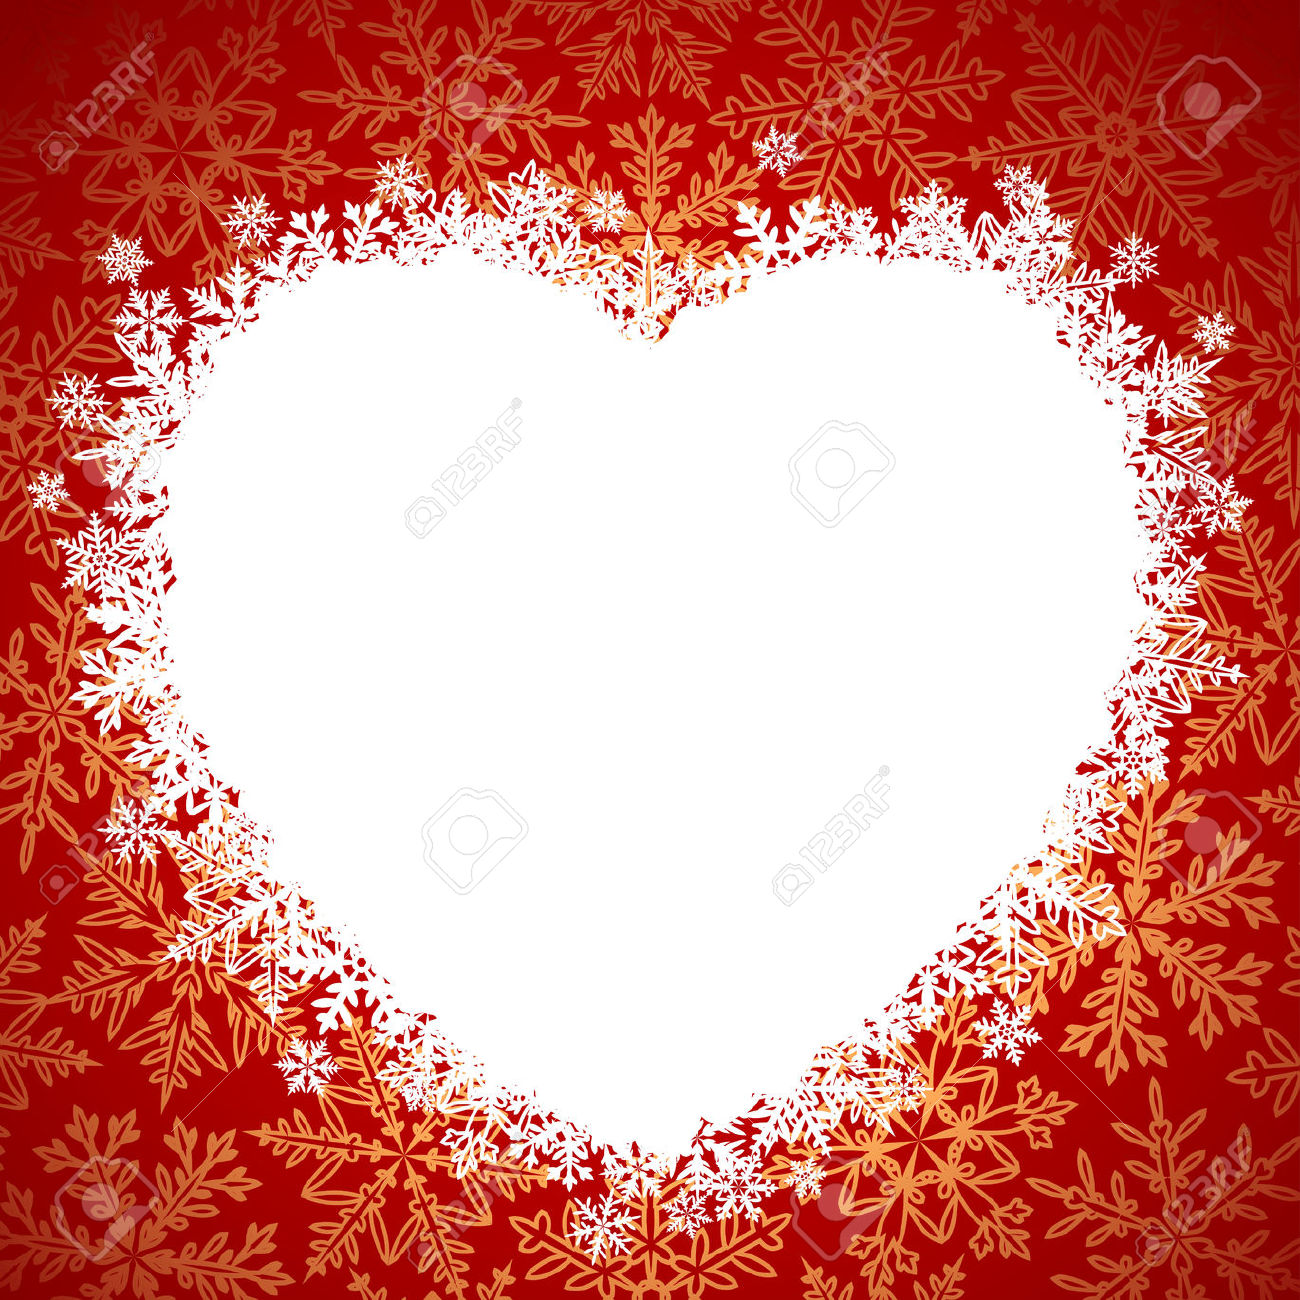 Snow Frame In The Shape Of Heart Royalty Free Cliparts, Vectors.